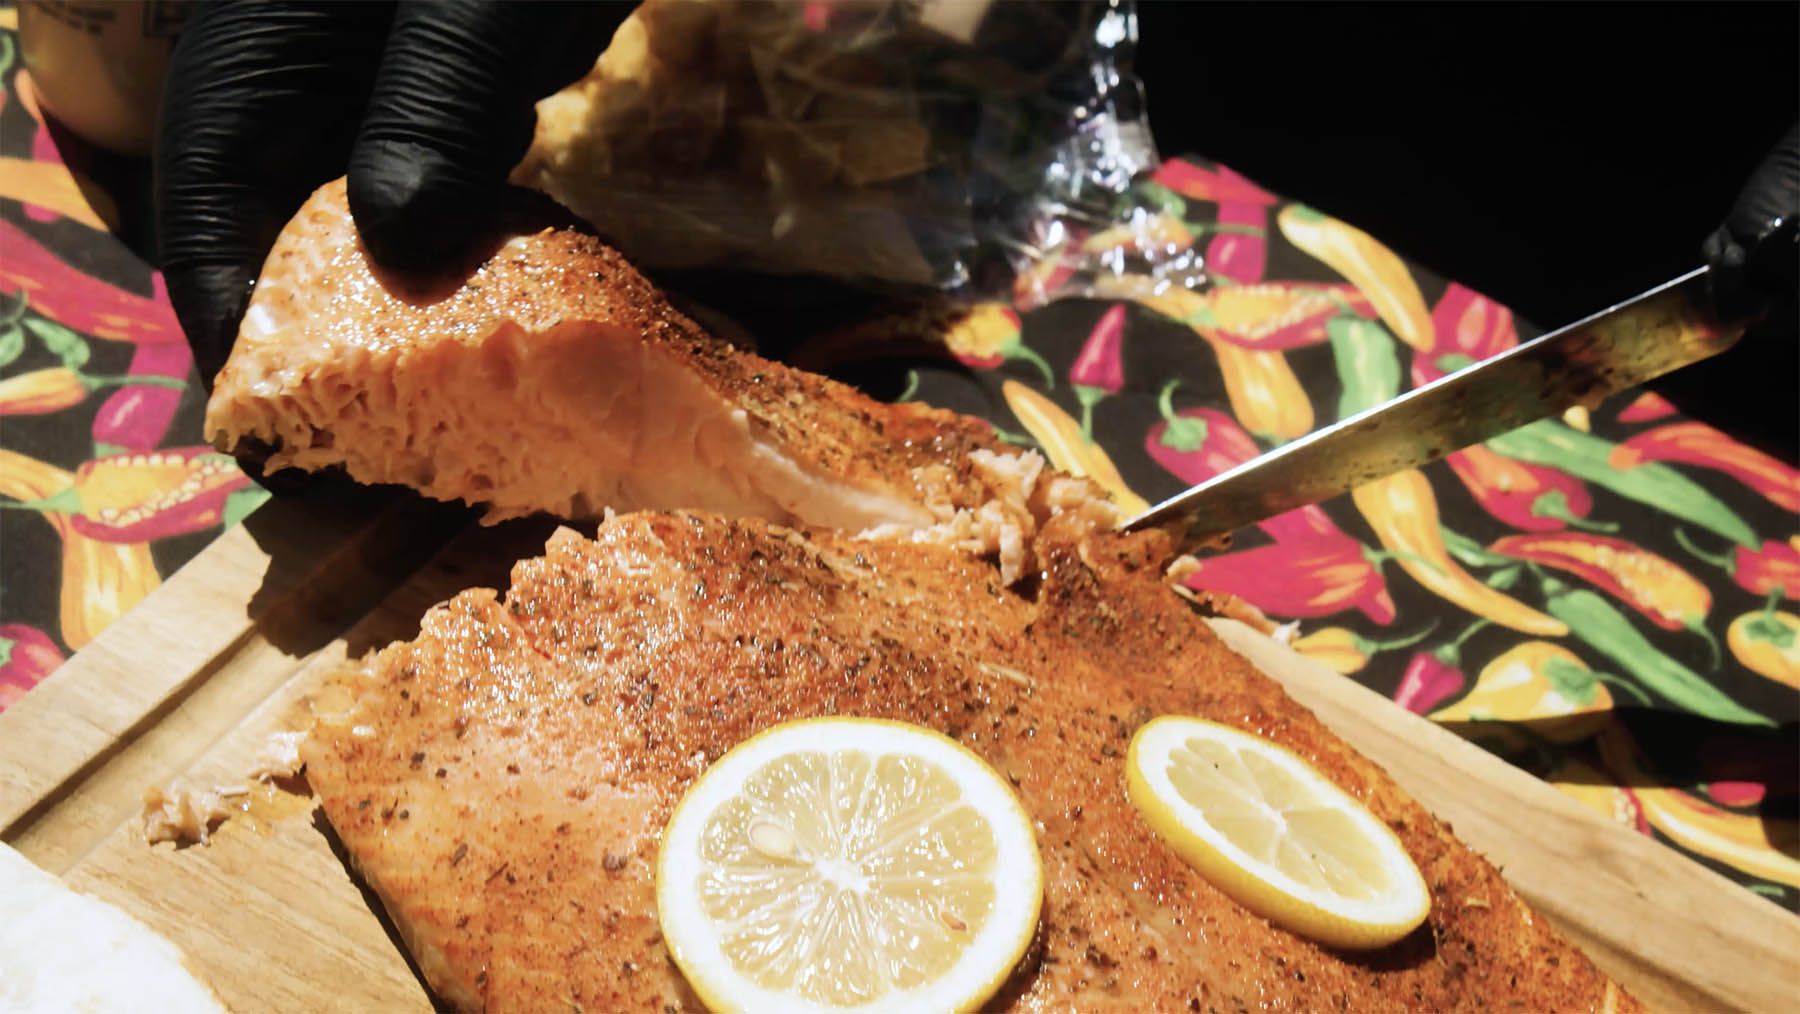 Grilled salmon with lemon slices being sliced on cutting board